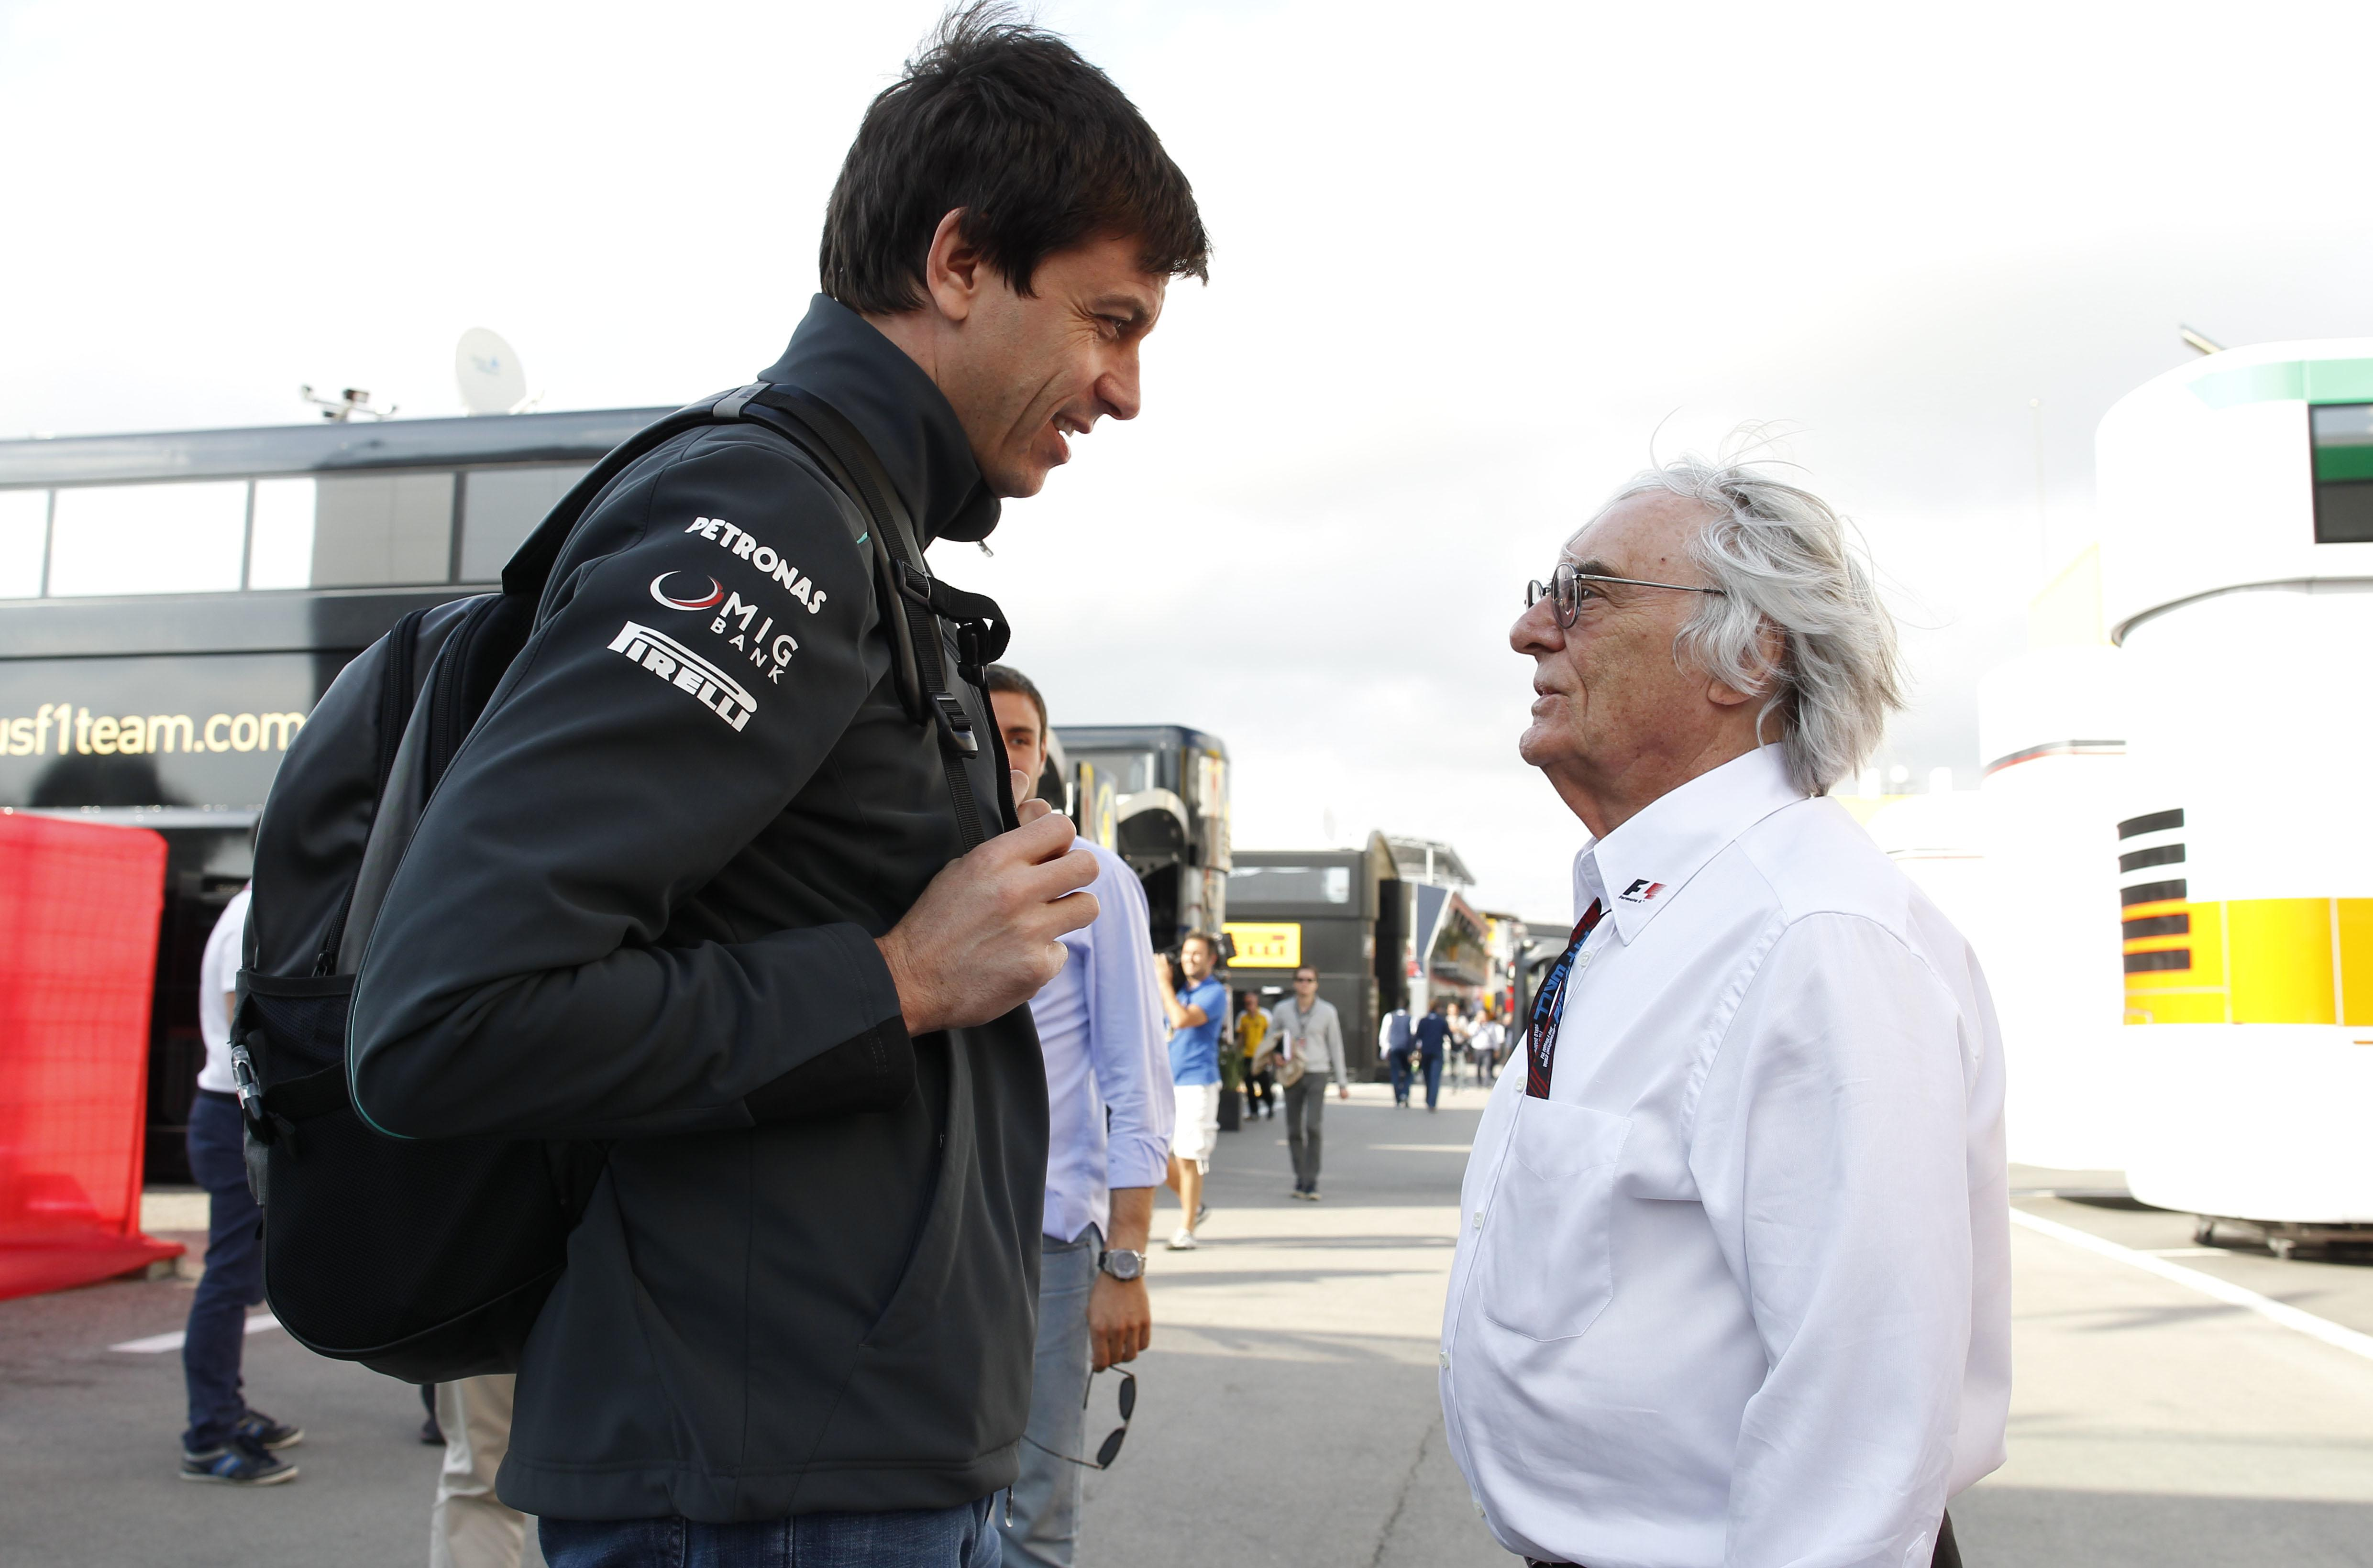 Bernie Ecclstone wanted Toto Wolff to supply Red Bull with same engines in 2015